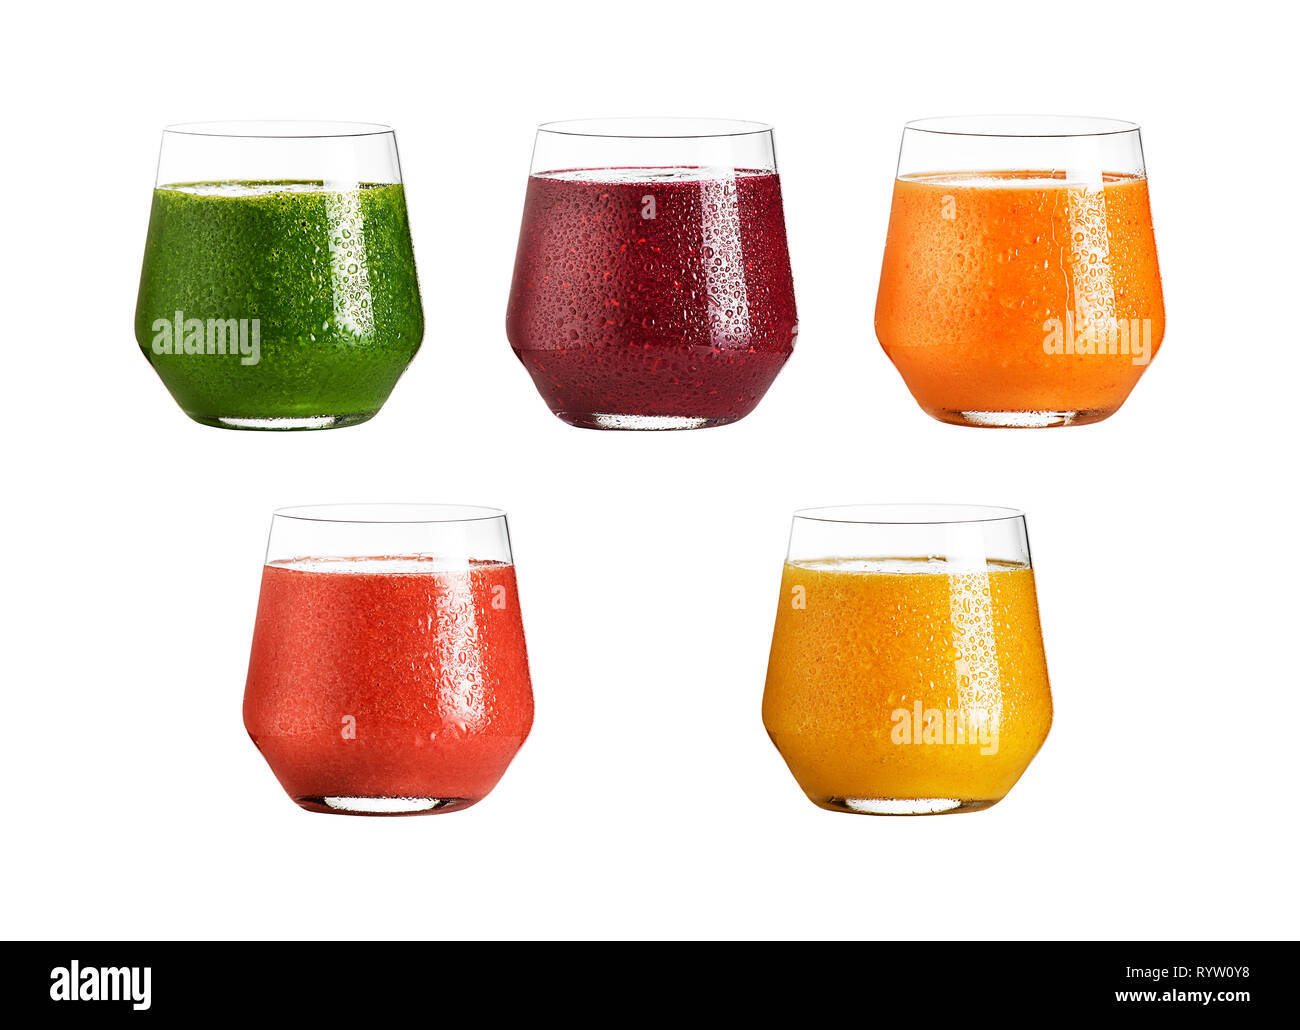 Collage of Glass fruit juice and health smoothie isolated on white. Healthy summer treats rich in vitamins. Raw, vegan, vegetarian, alkaline food conc - Stock Image